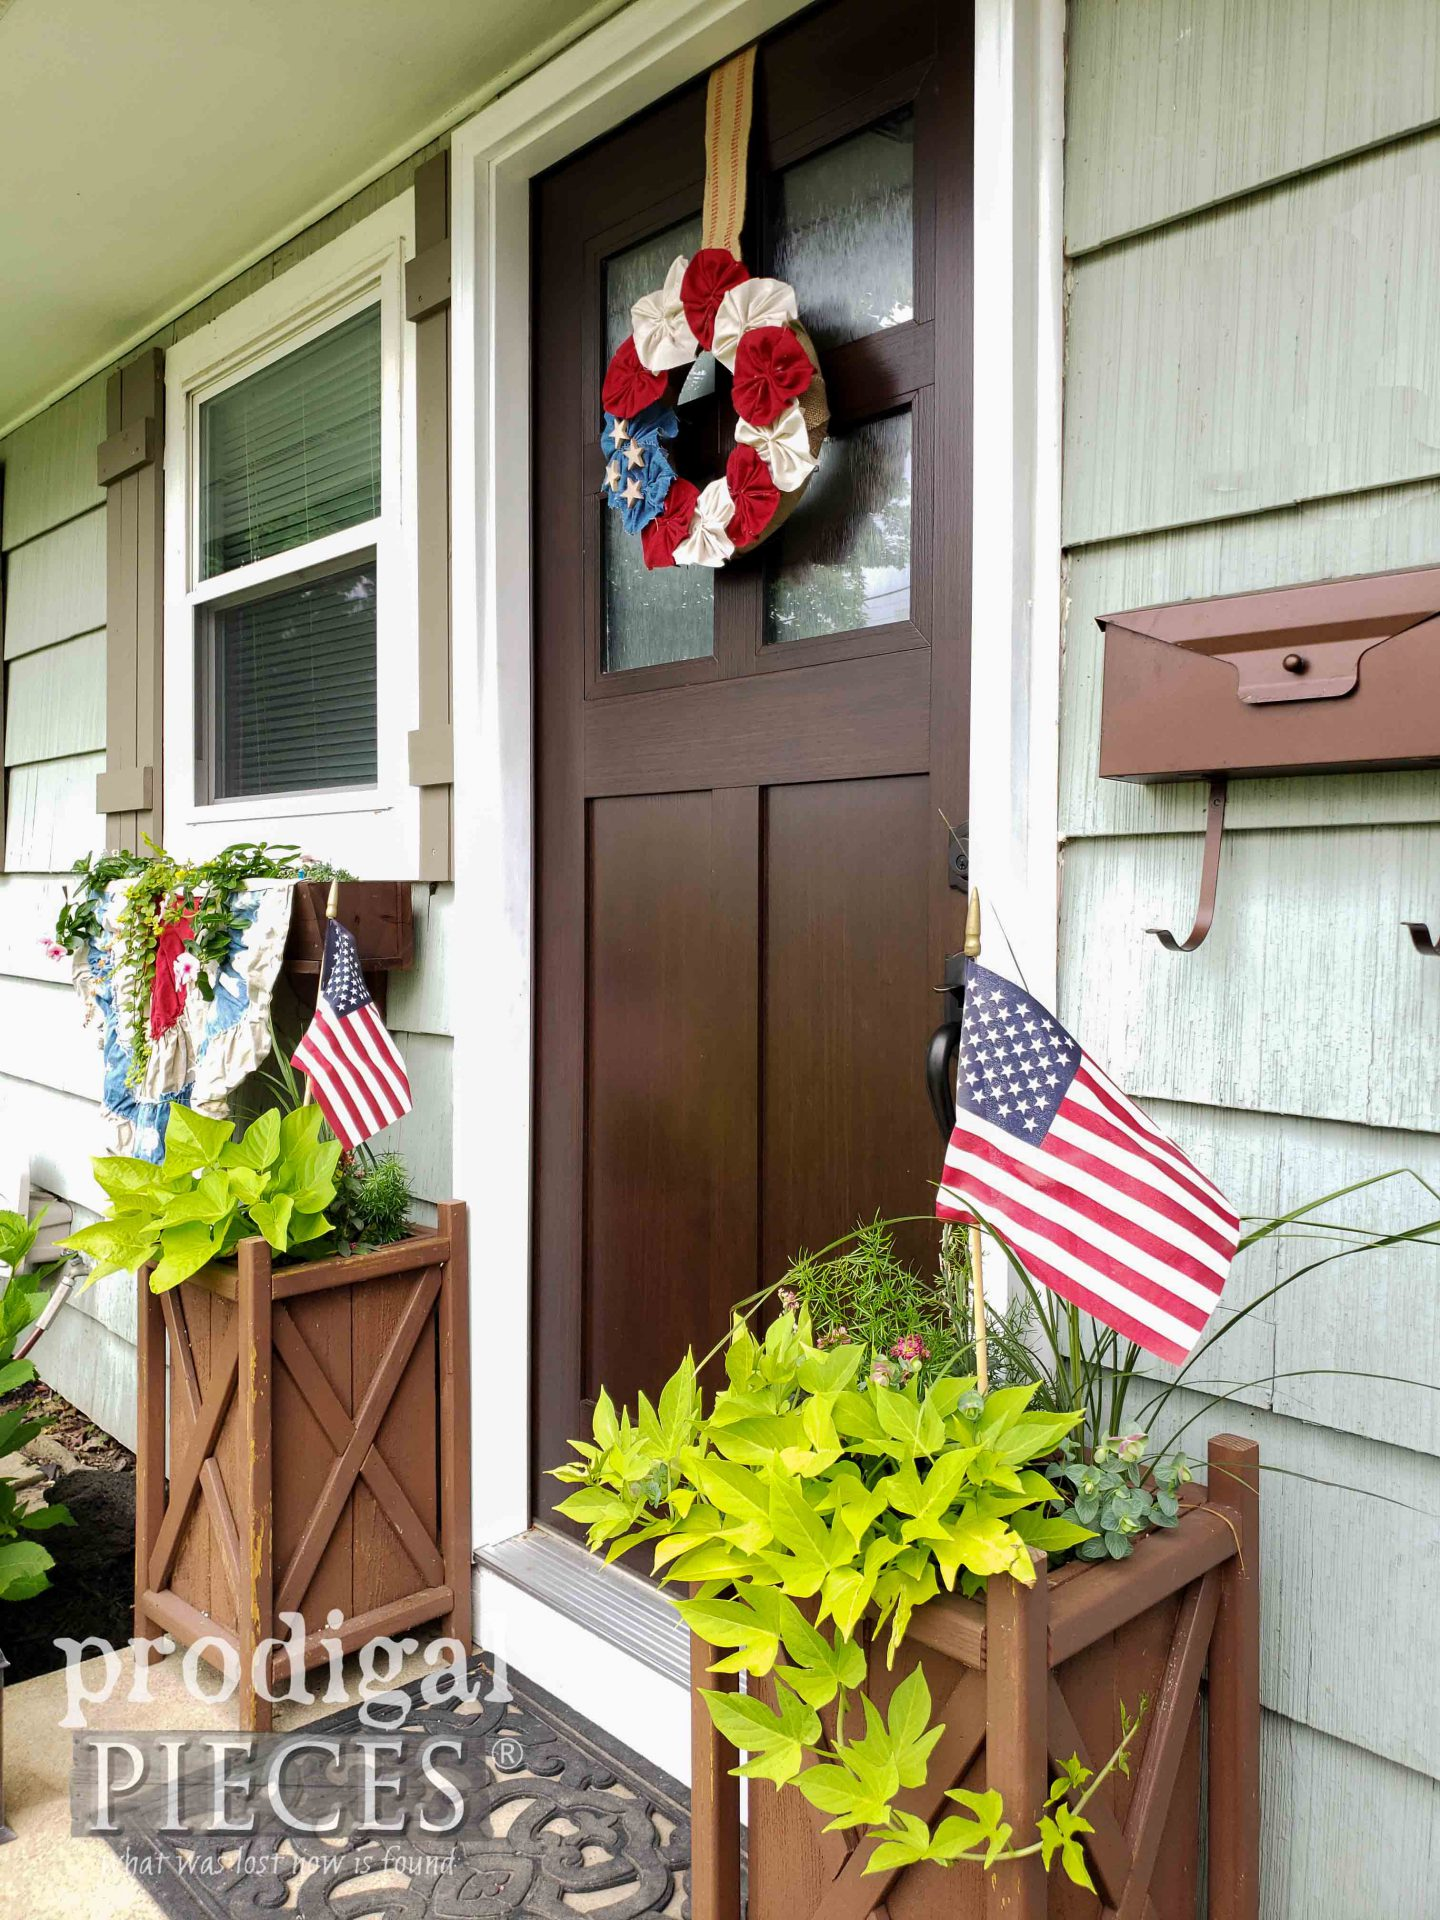 DIY 4th of July Decor with Handmade Wreath by Larissa of Prodigal Pieces | prodigalpieces.com #prodigalpieces #diy #home #homedecor #4thofjuly